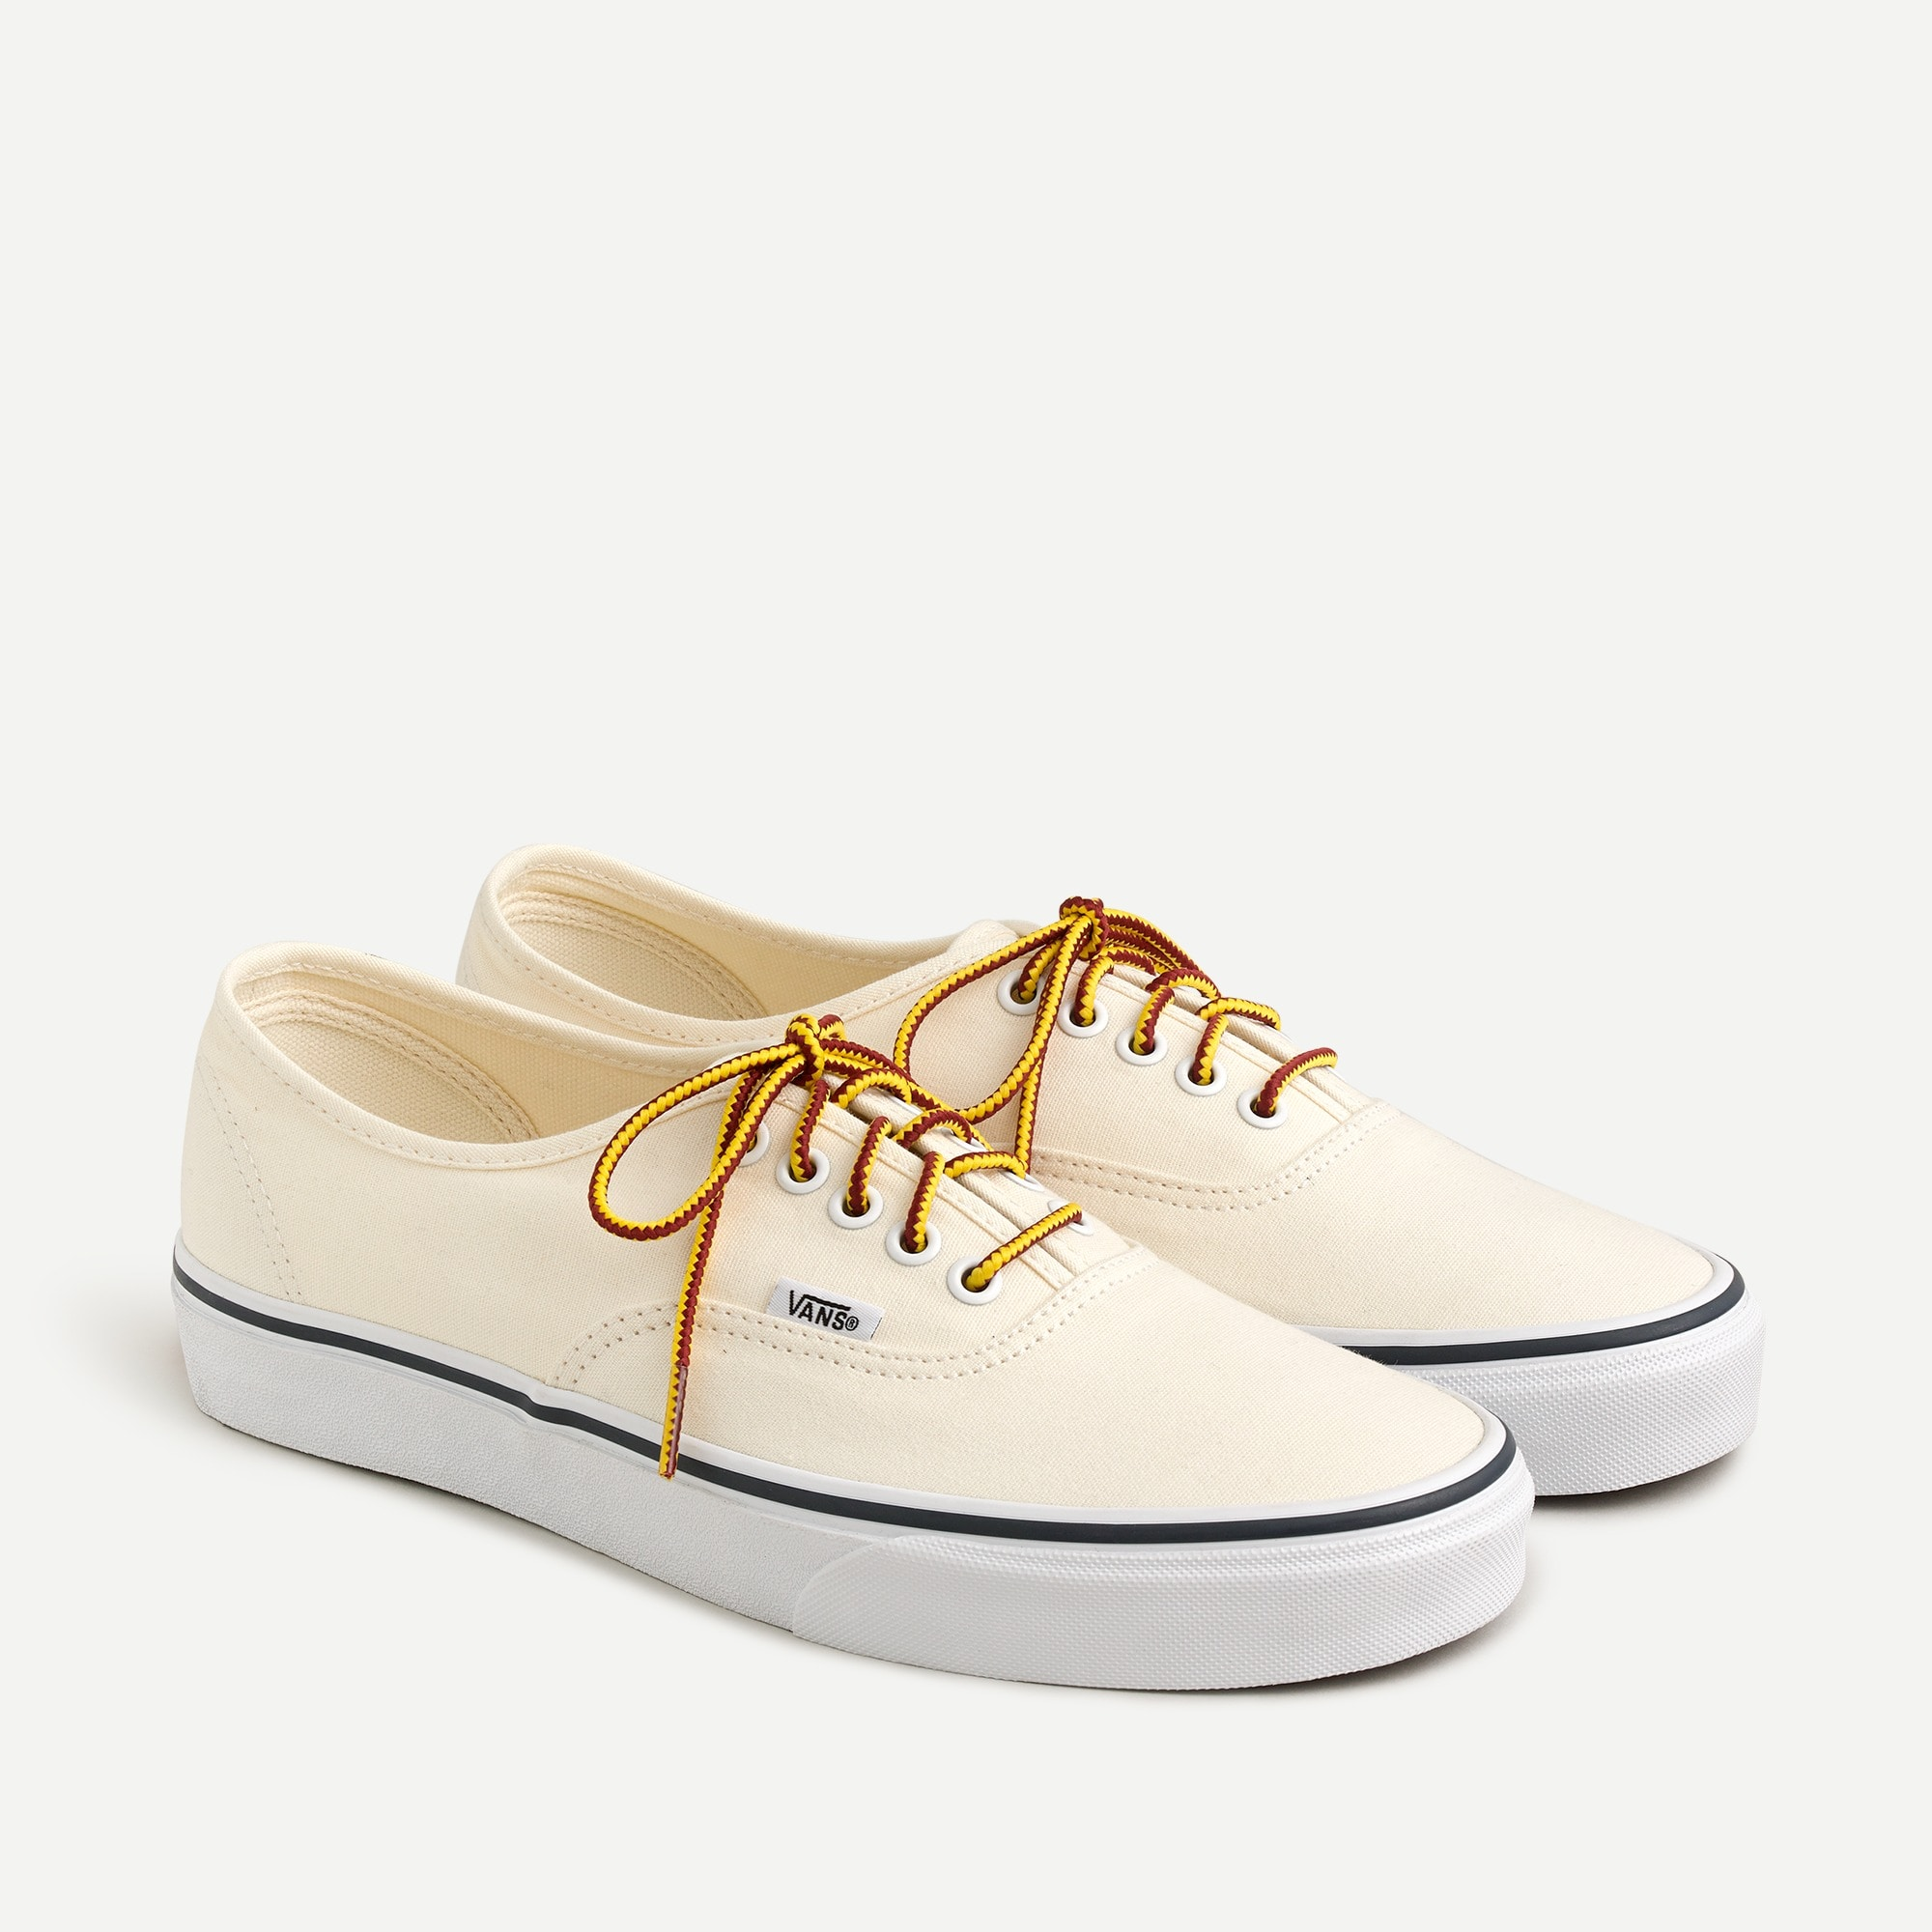 Vans® for J.Crew canvas authentic sneakers boy shoes & sneakers c